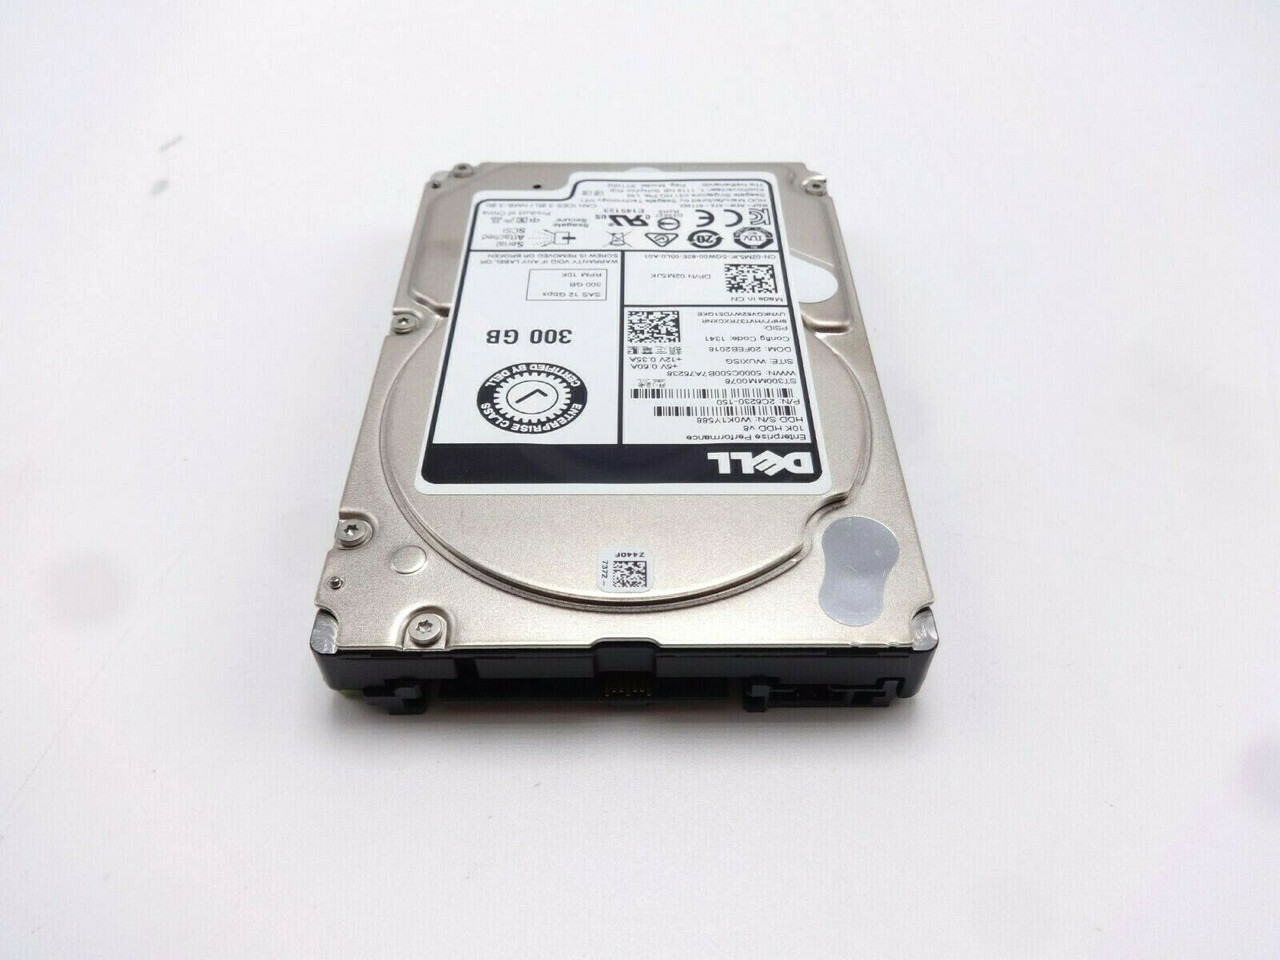 Dell 2M5JK 300GB SAS 10K 12GBPS Hard Drive